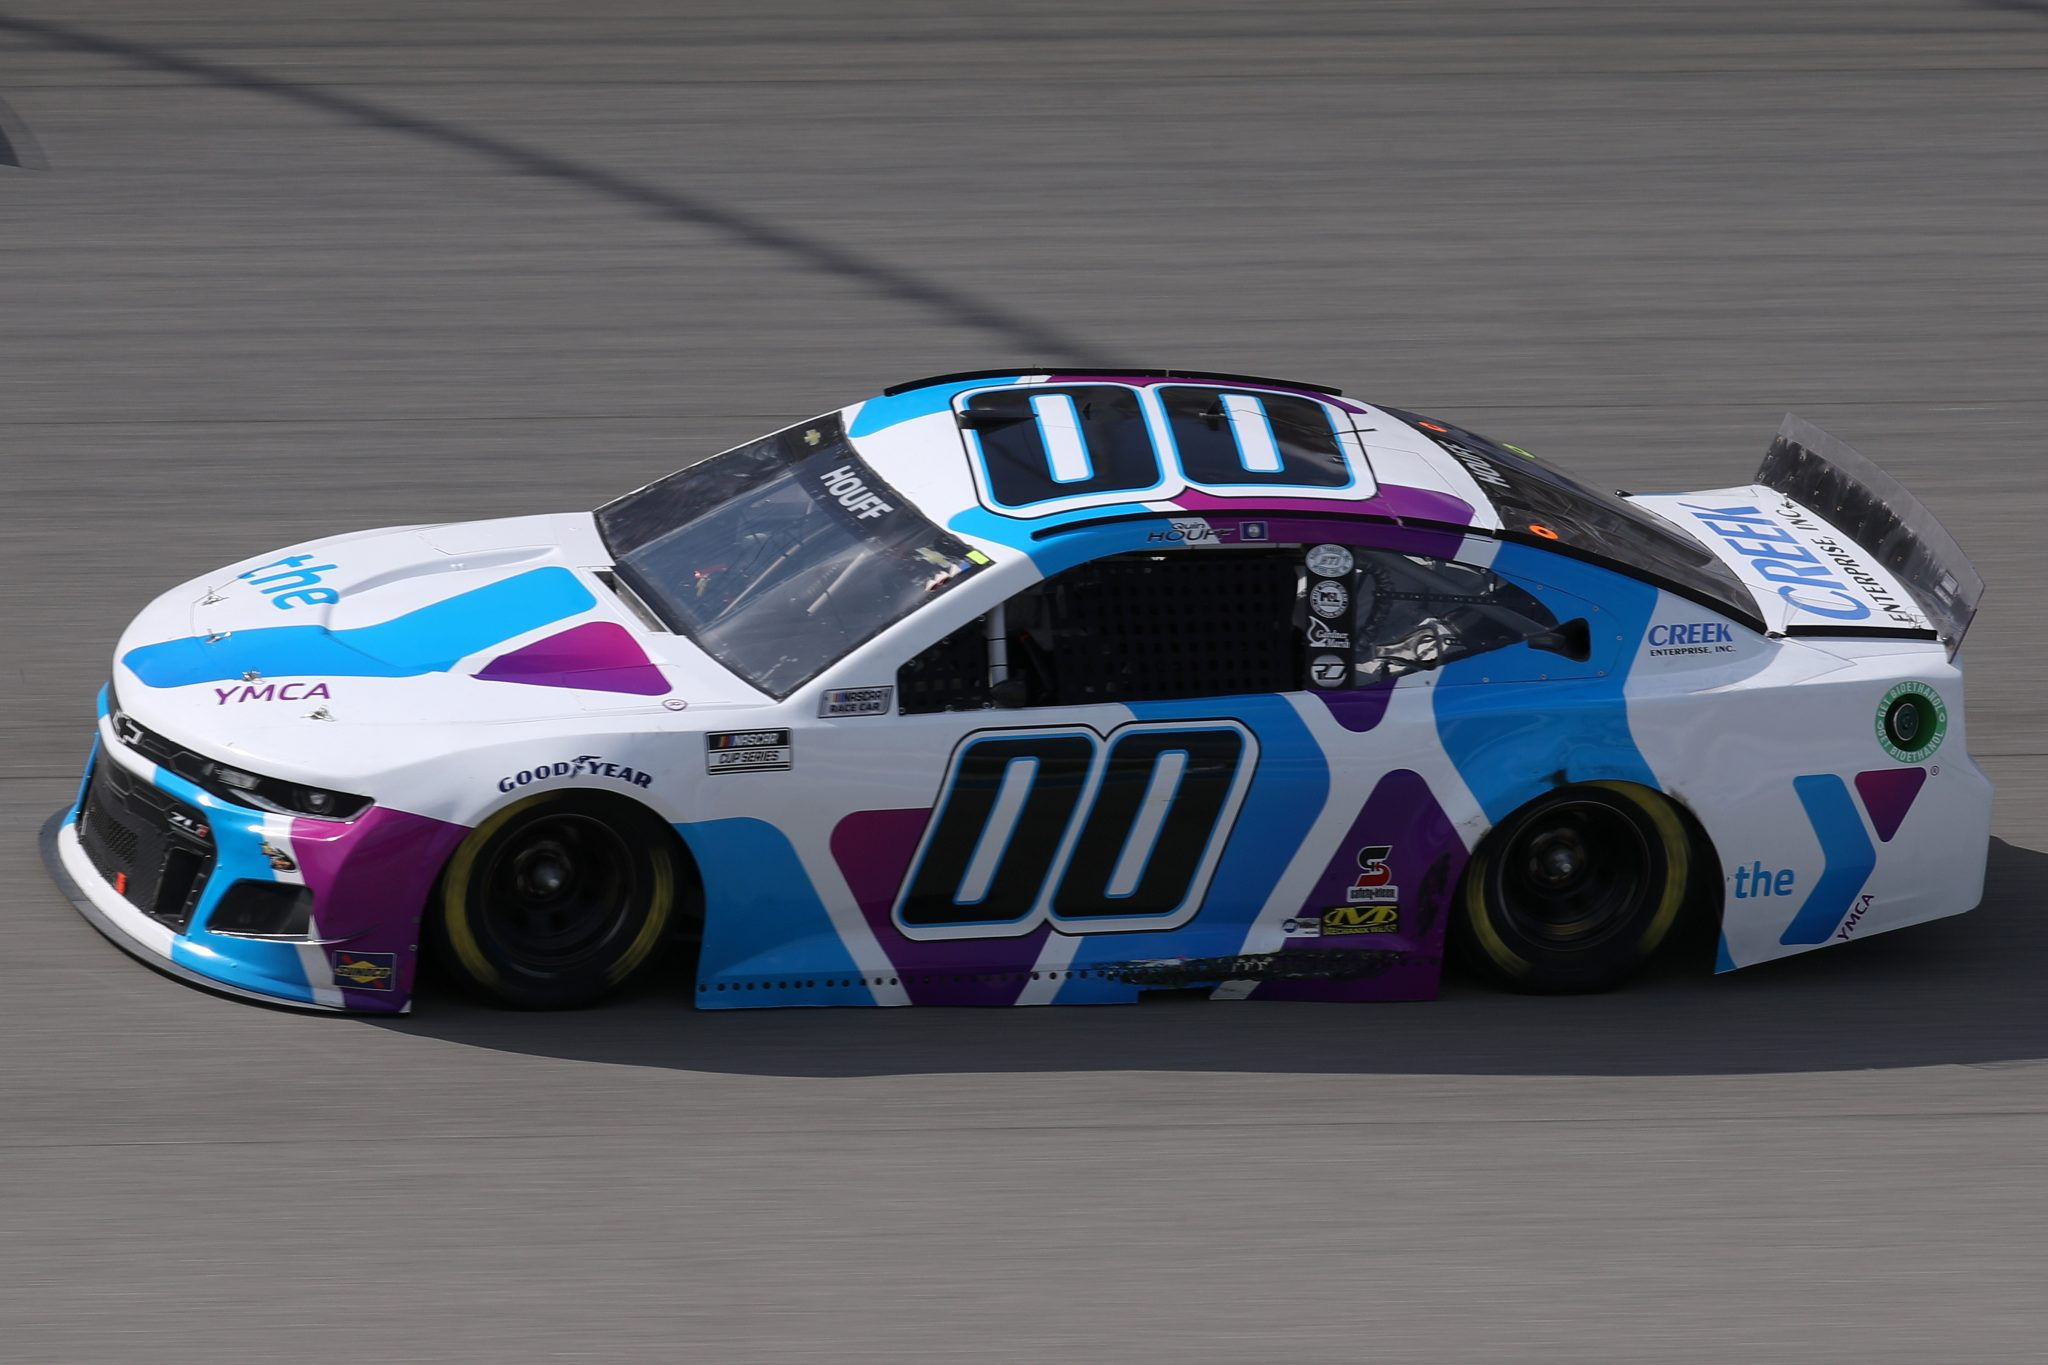 BROOKLYN, MICHIGAN - AUGUST 22: Quin Houff, driver of the #00 YMCA/CREEK Chevrolet, drives during the NASCAR Cup Series FireKeepers Casino 400 at Michigan International Speedway on August 22, 2021 in Brooklyn, Michigan. (Photo by Sean Gardner/Getty Images)   Getty Images